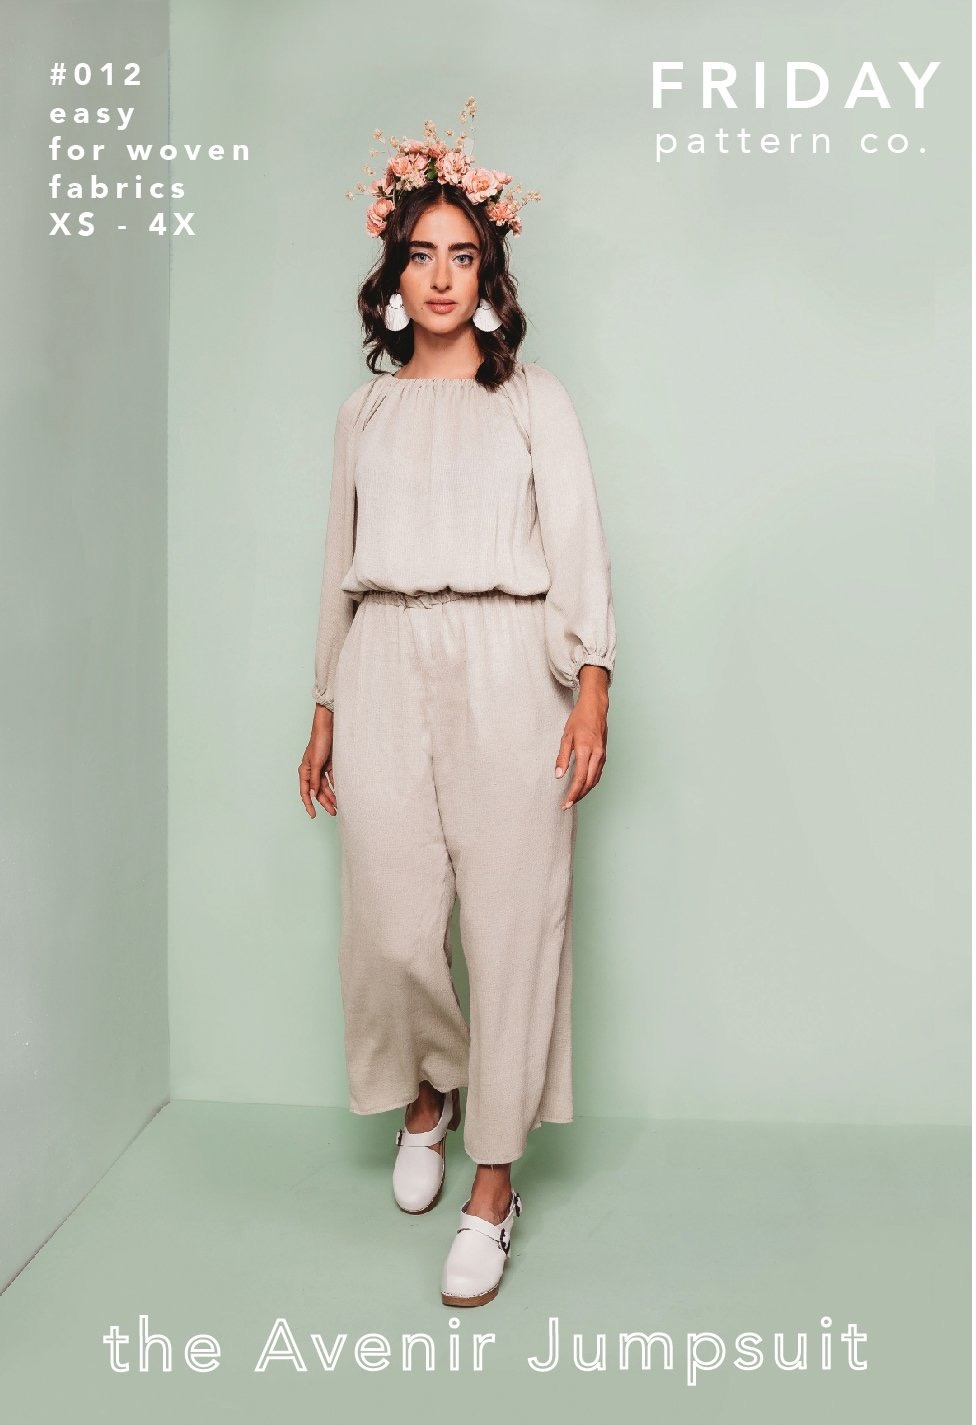 Friday Pattern Co. : the Avenir Jumpsuit